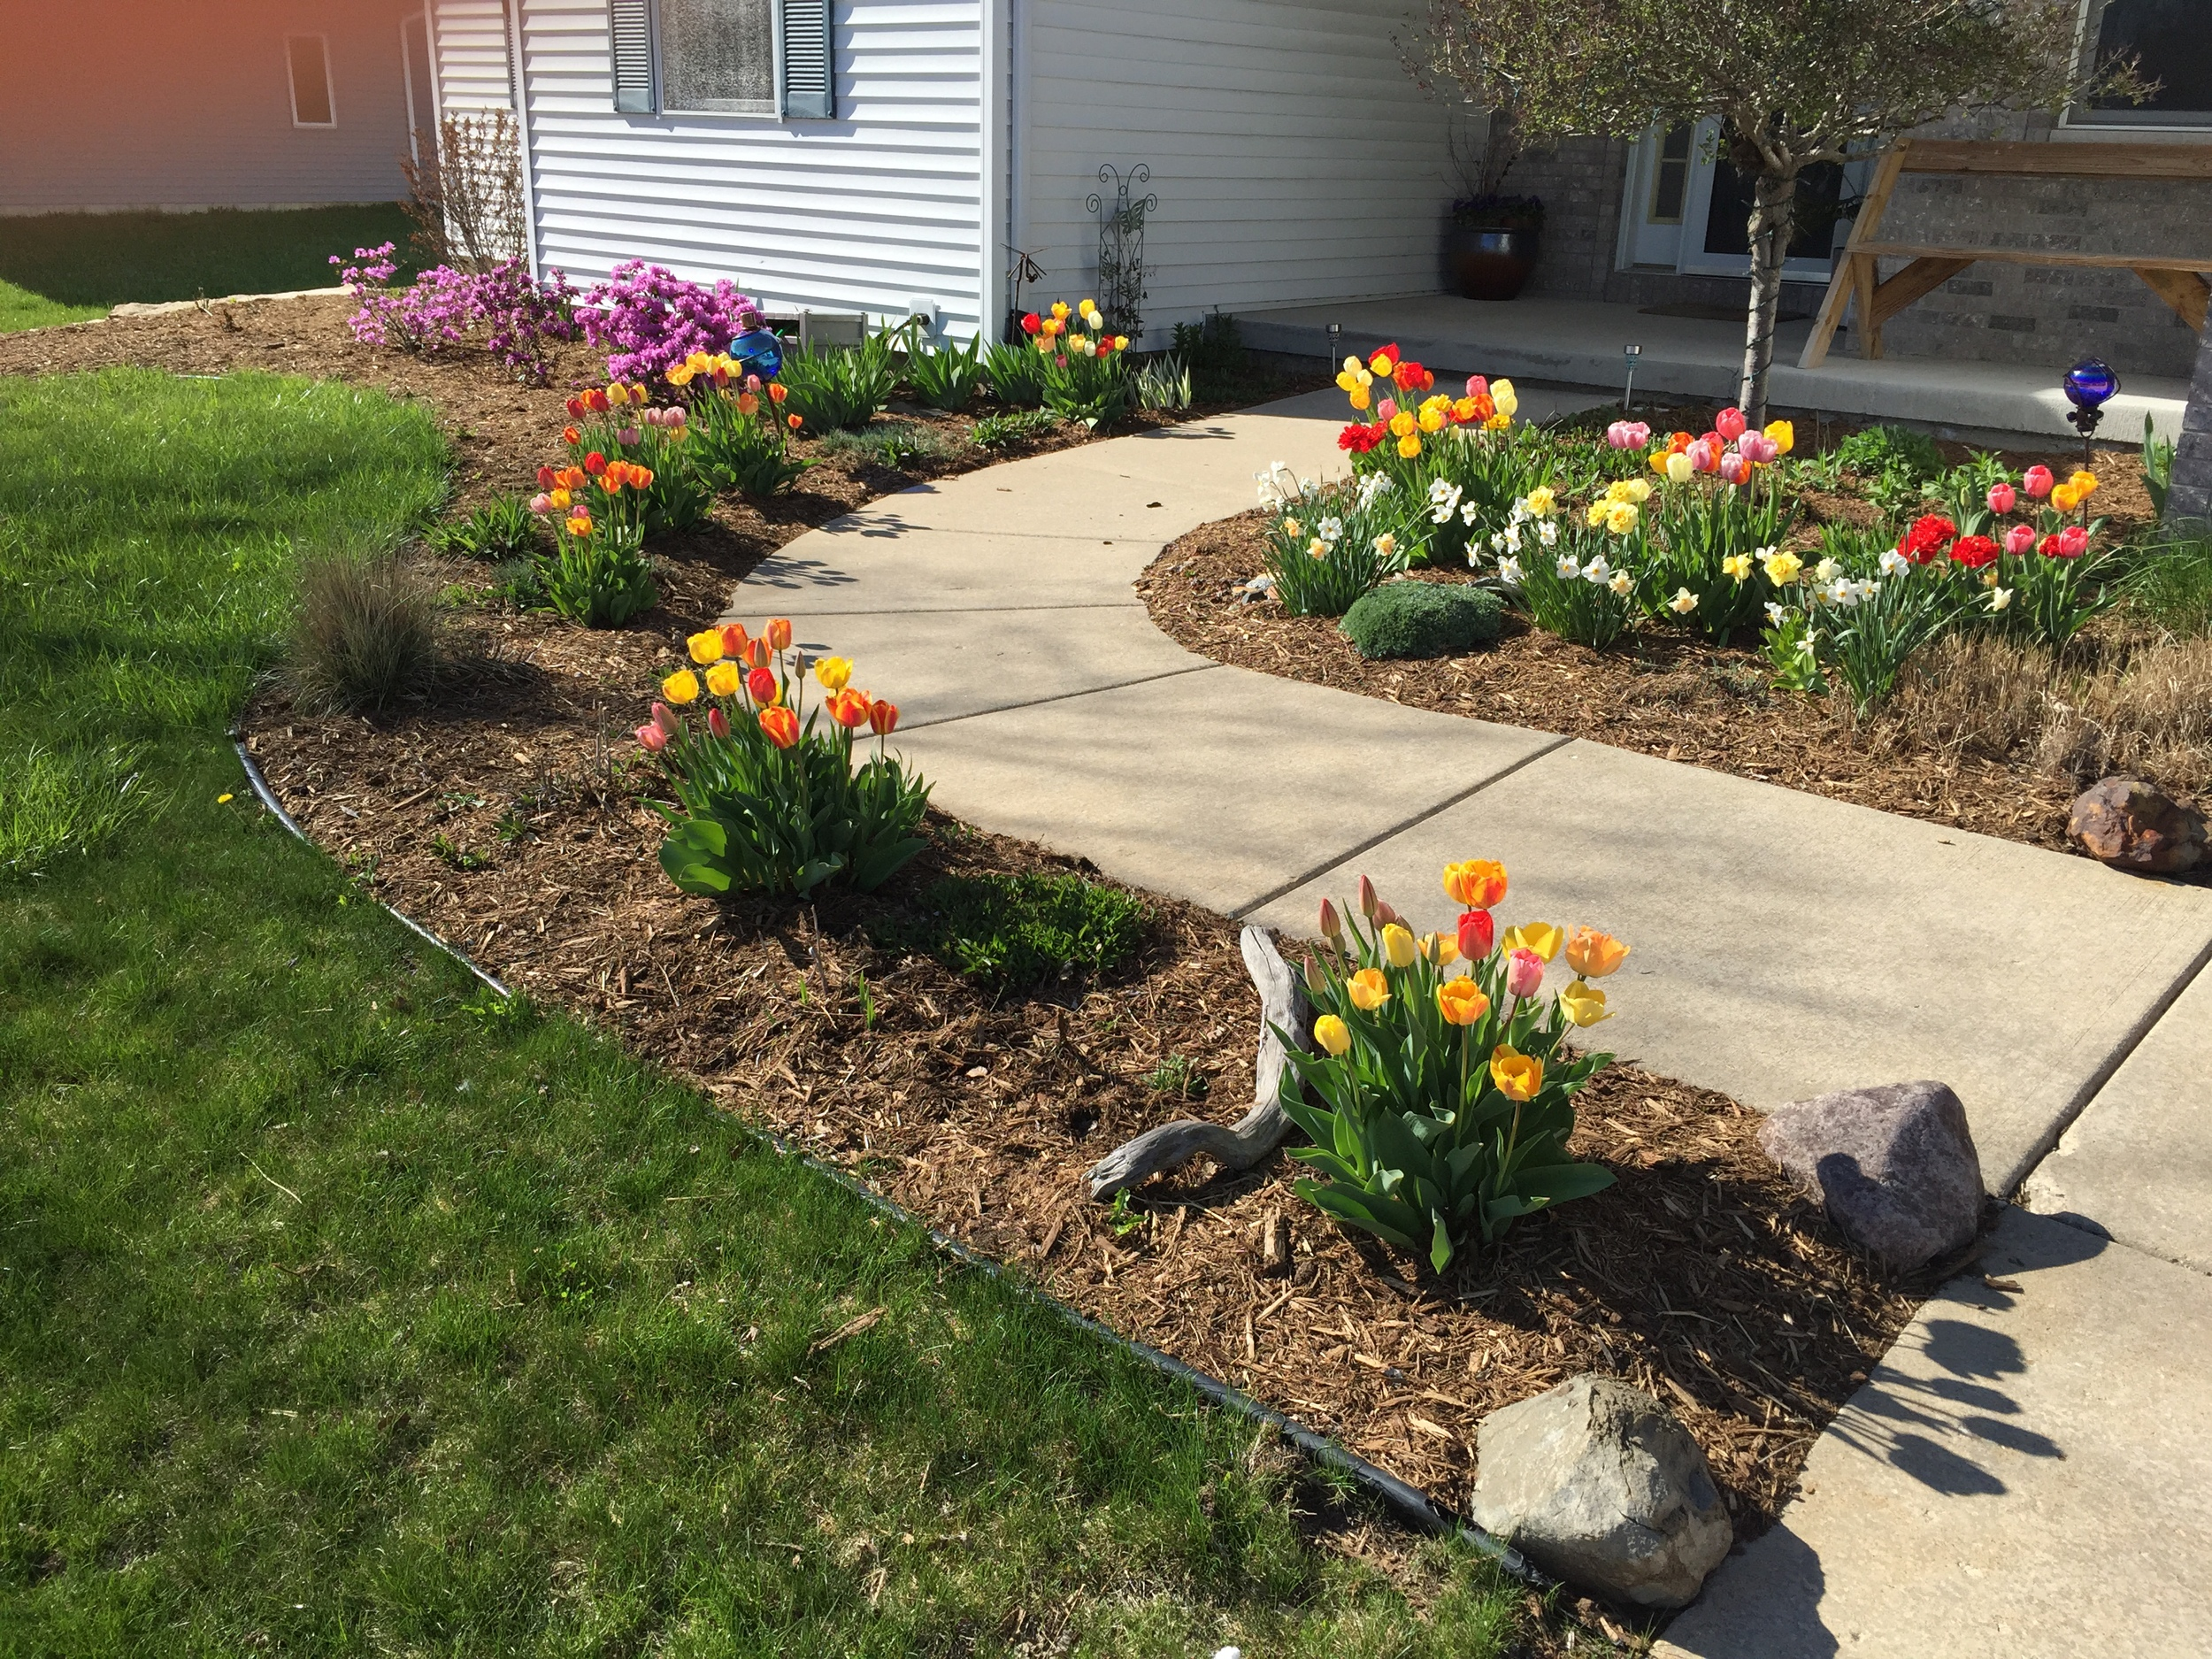 Plant bulbs in your planting bedslike Tulips and Daffodils in the fall for early spring color!